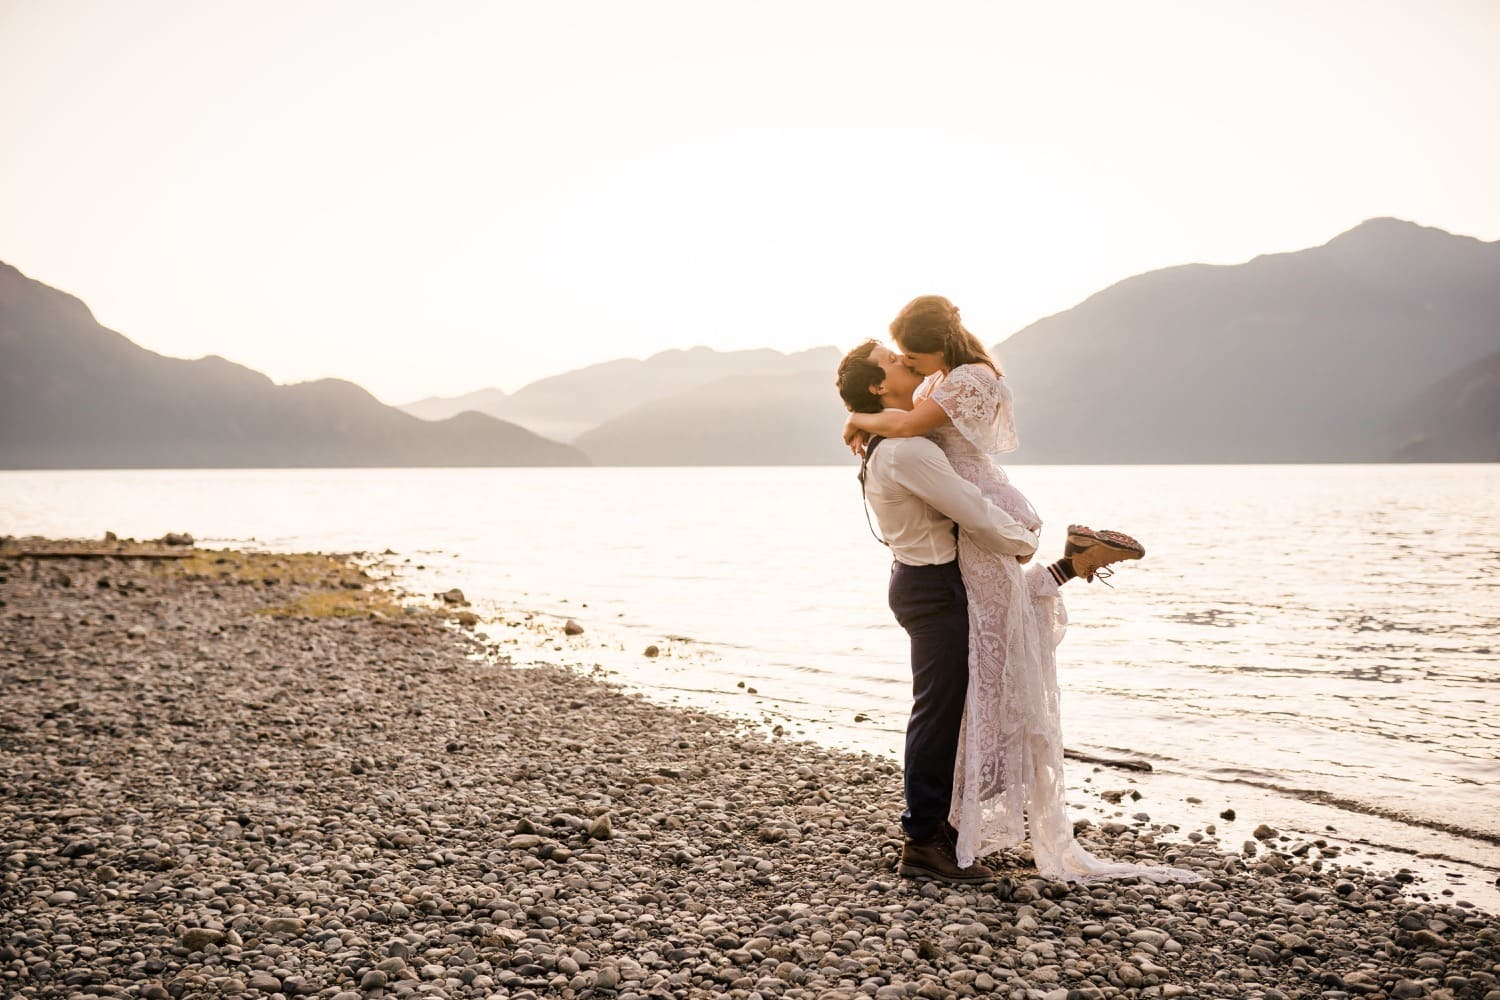 Golden light surrounds a bride and groom as her picks her up and kisses her beside the ocean